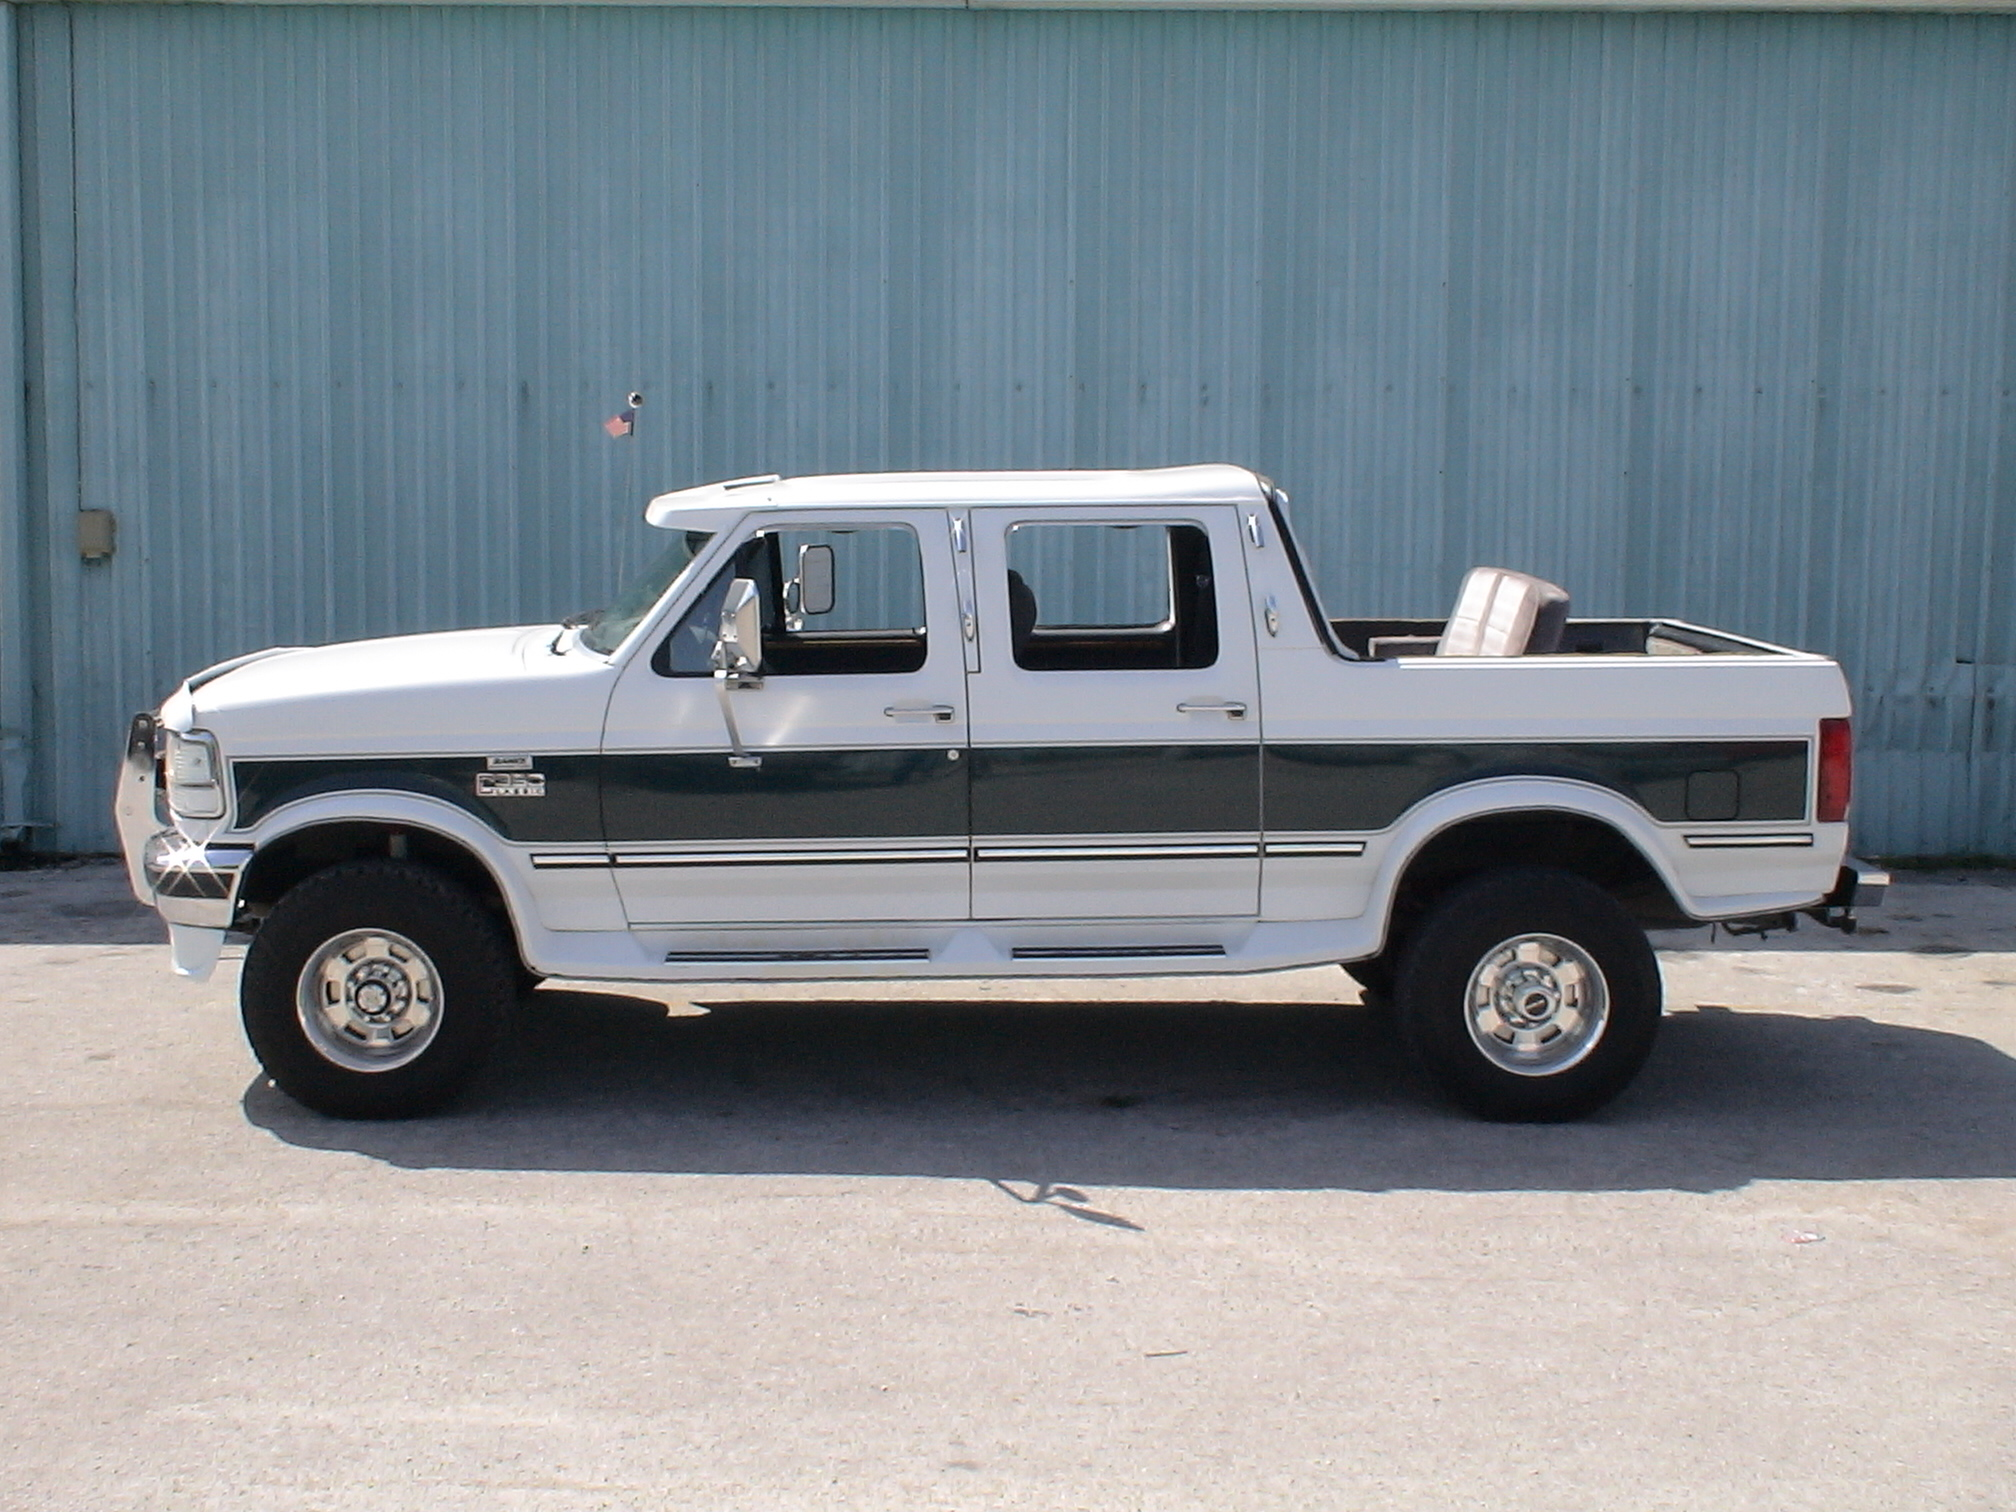 Diesel ford bronco for sale - Diesel Ford Bronco For Sale 9